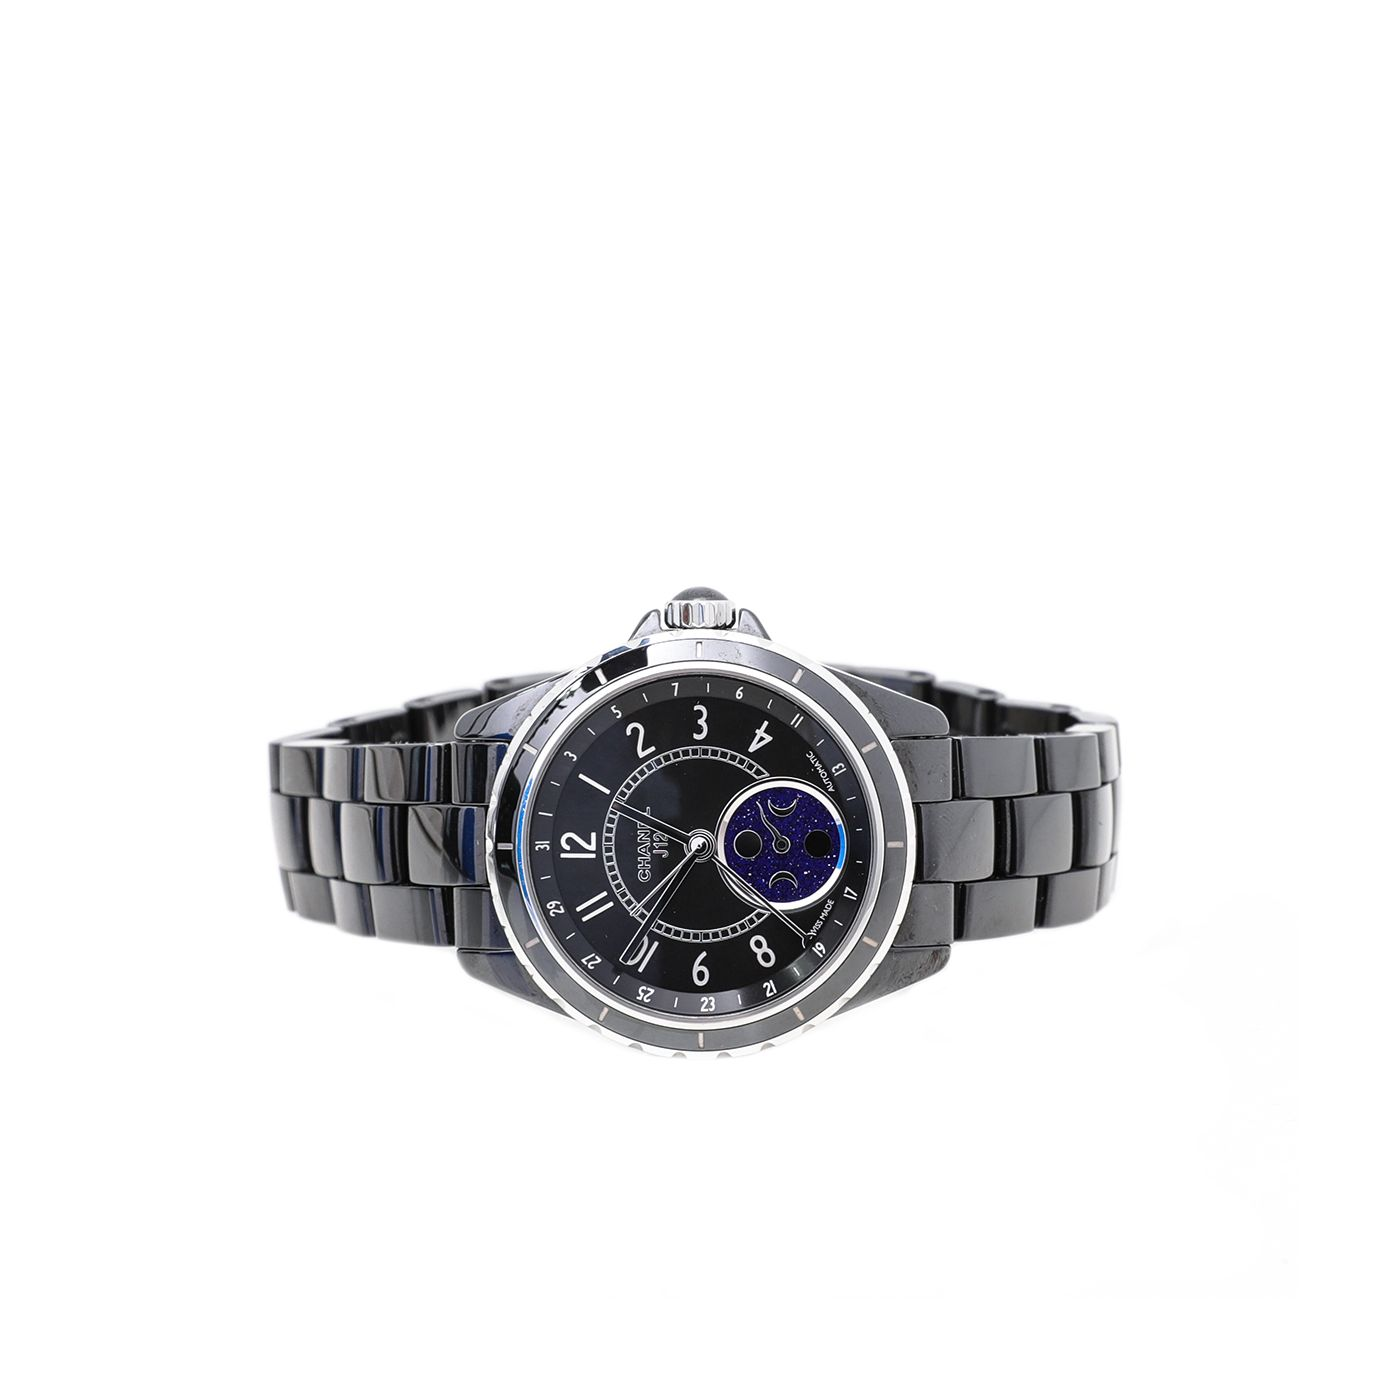 Chanel Black Ceramic J12 Moonphase 38mm Watch